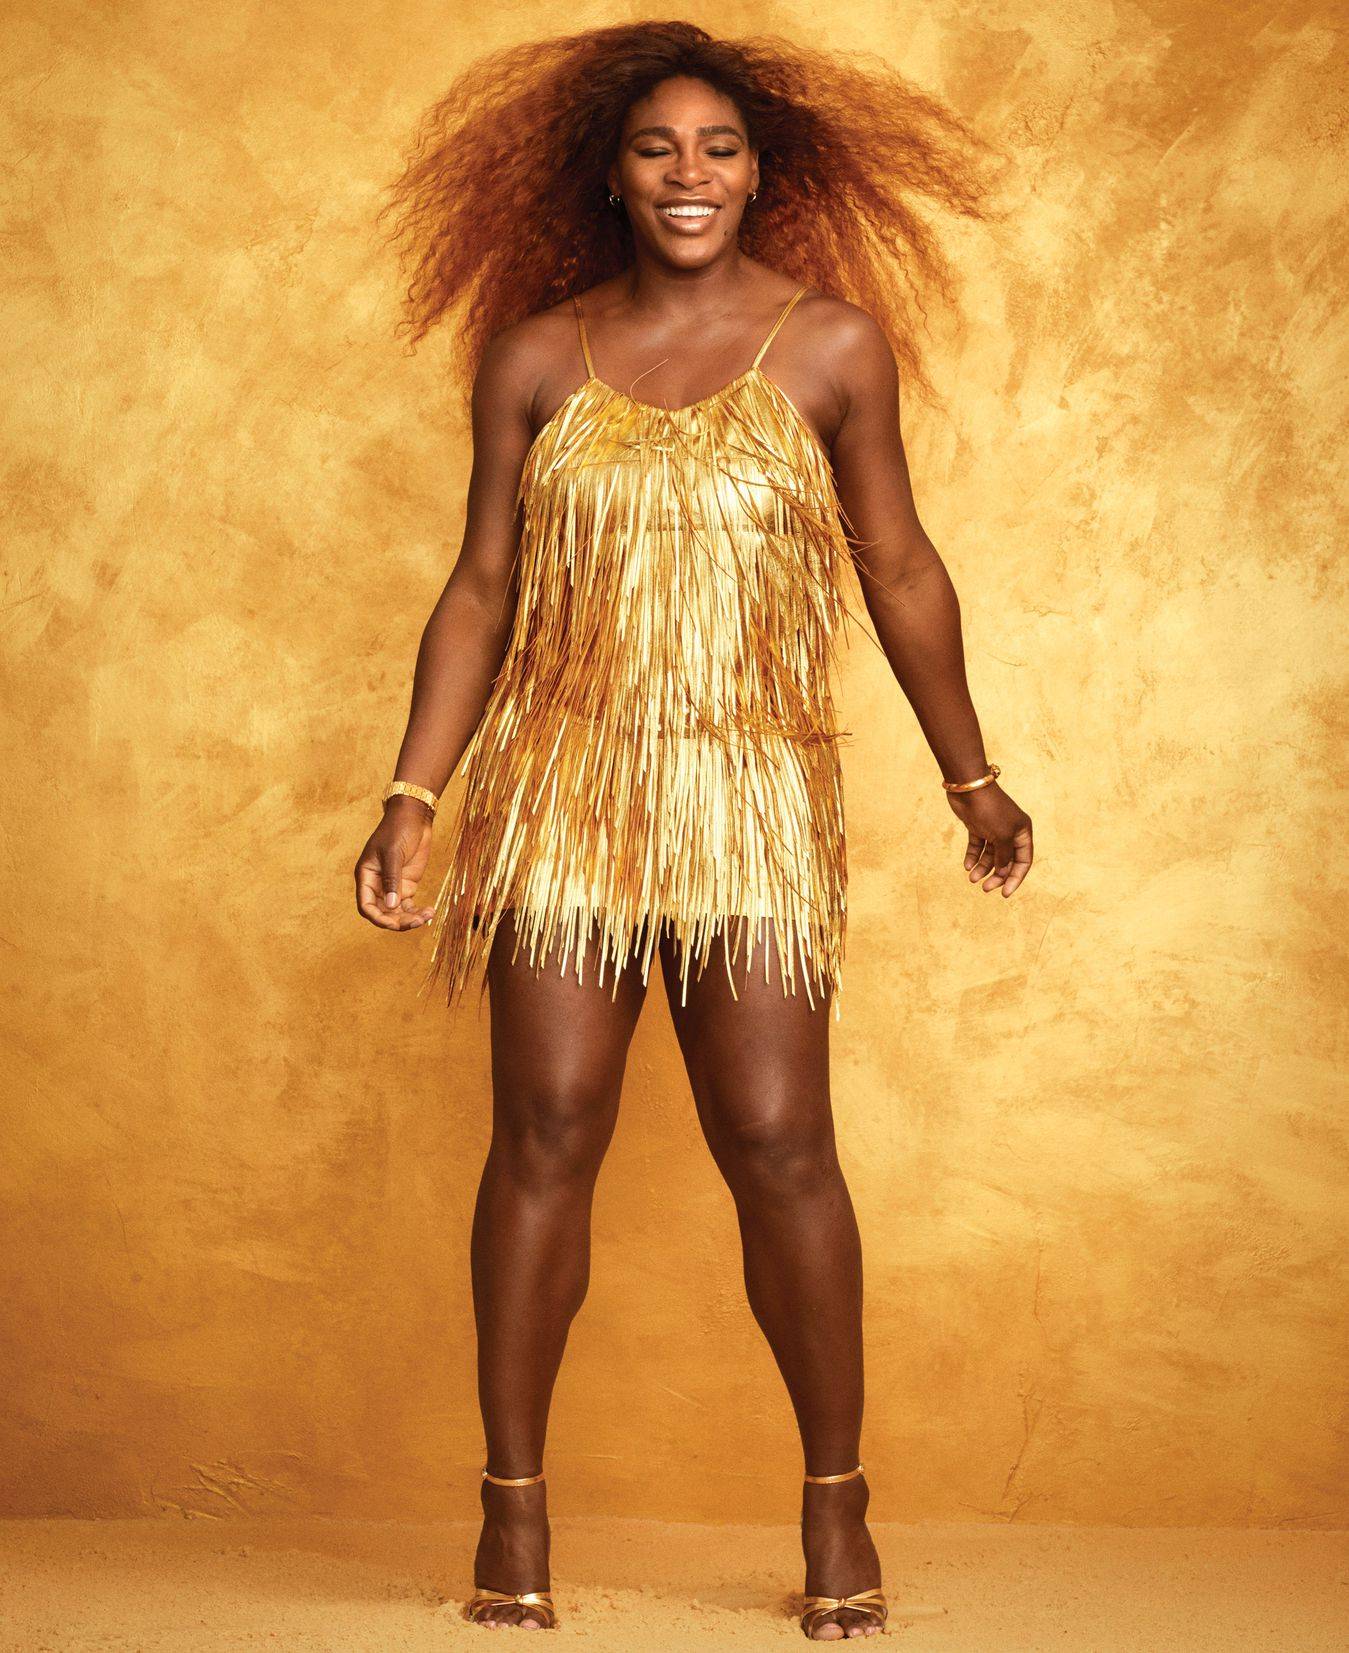 Serena Williams by Alexi Lubomirski for British Vogue Aug 2019 (4).jpg